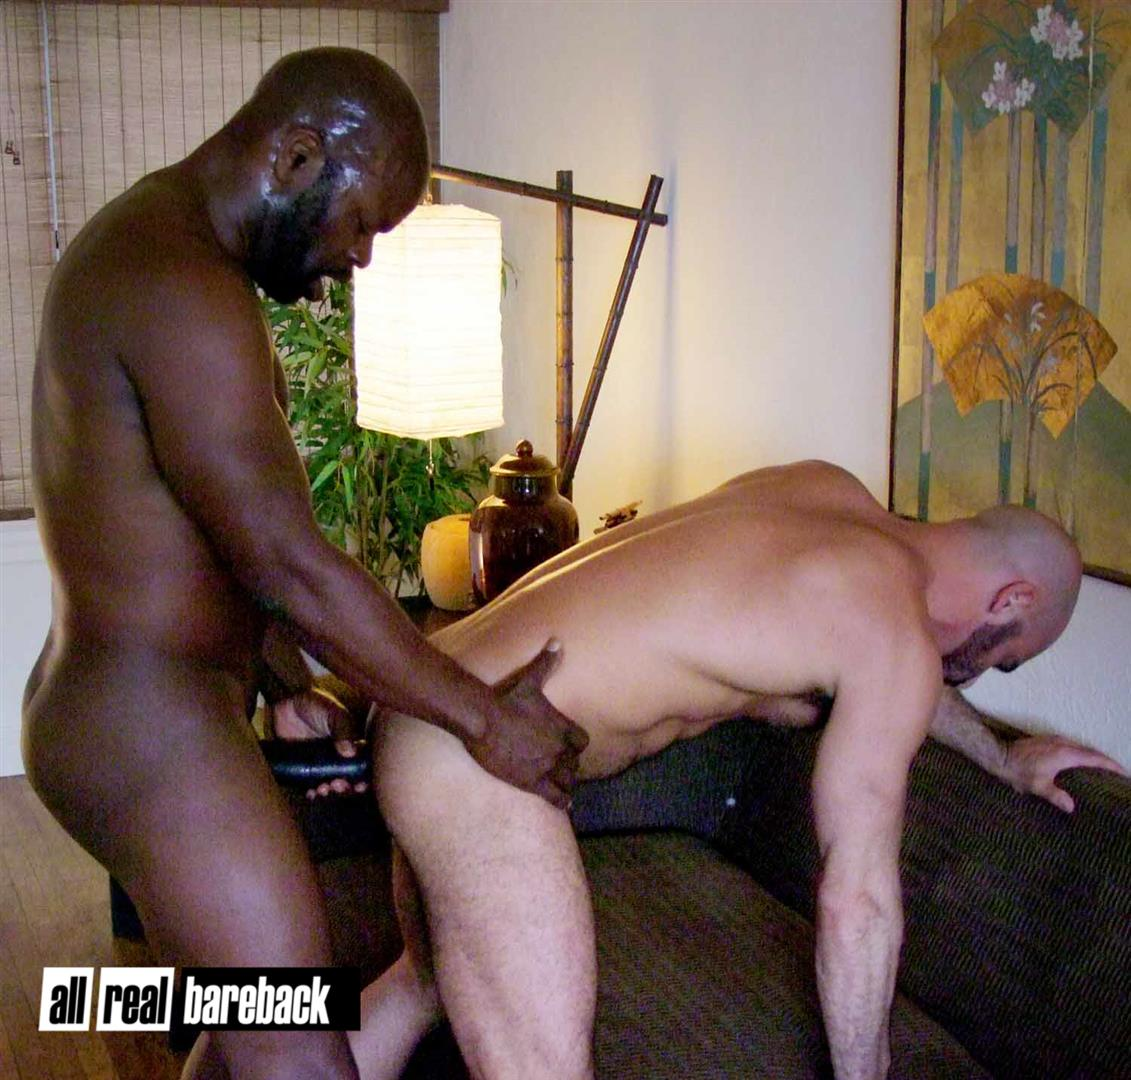 All-Real-Bareback-Cutler-X-and-Adam-Russo-Real-Life-Boyfriends-Barebacking-Amateur-Gay-Porn-12 Cutler X Films His First Ever Bareback Video With Real Life BF Adam Russo